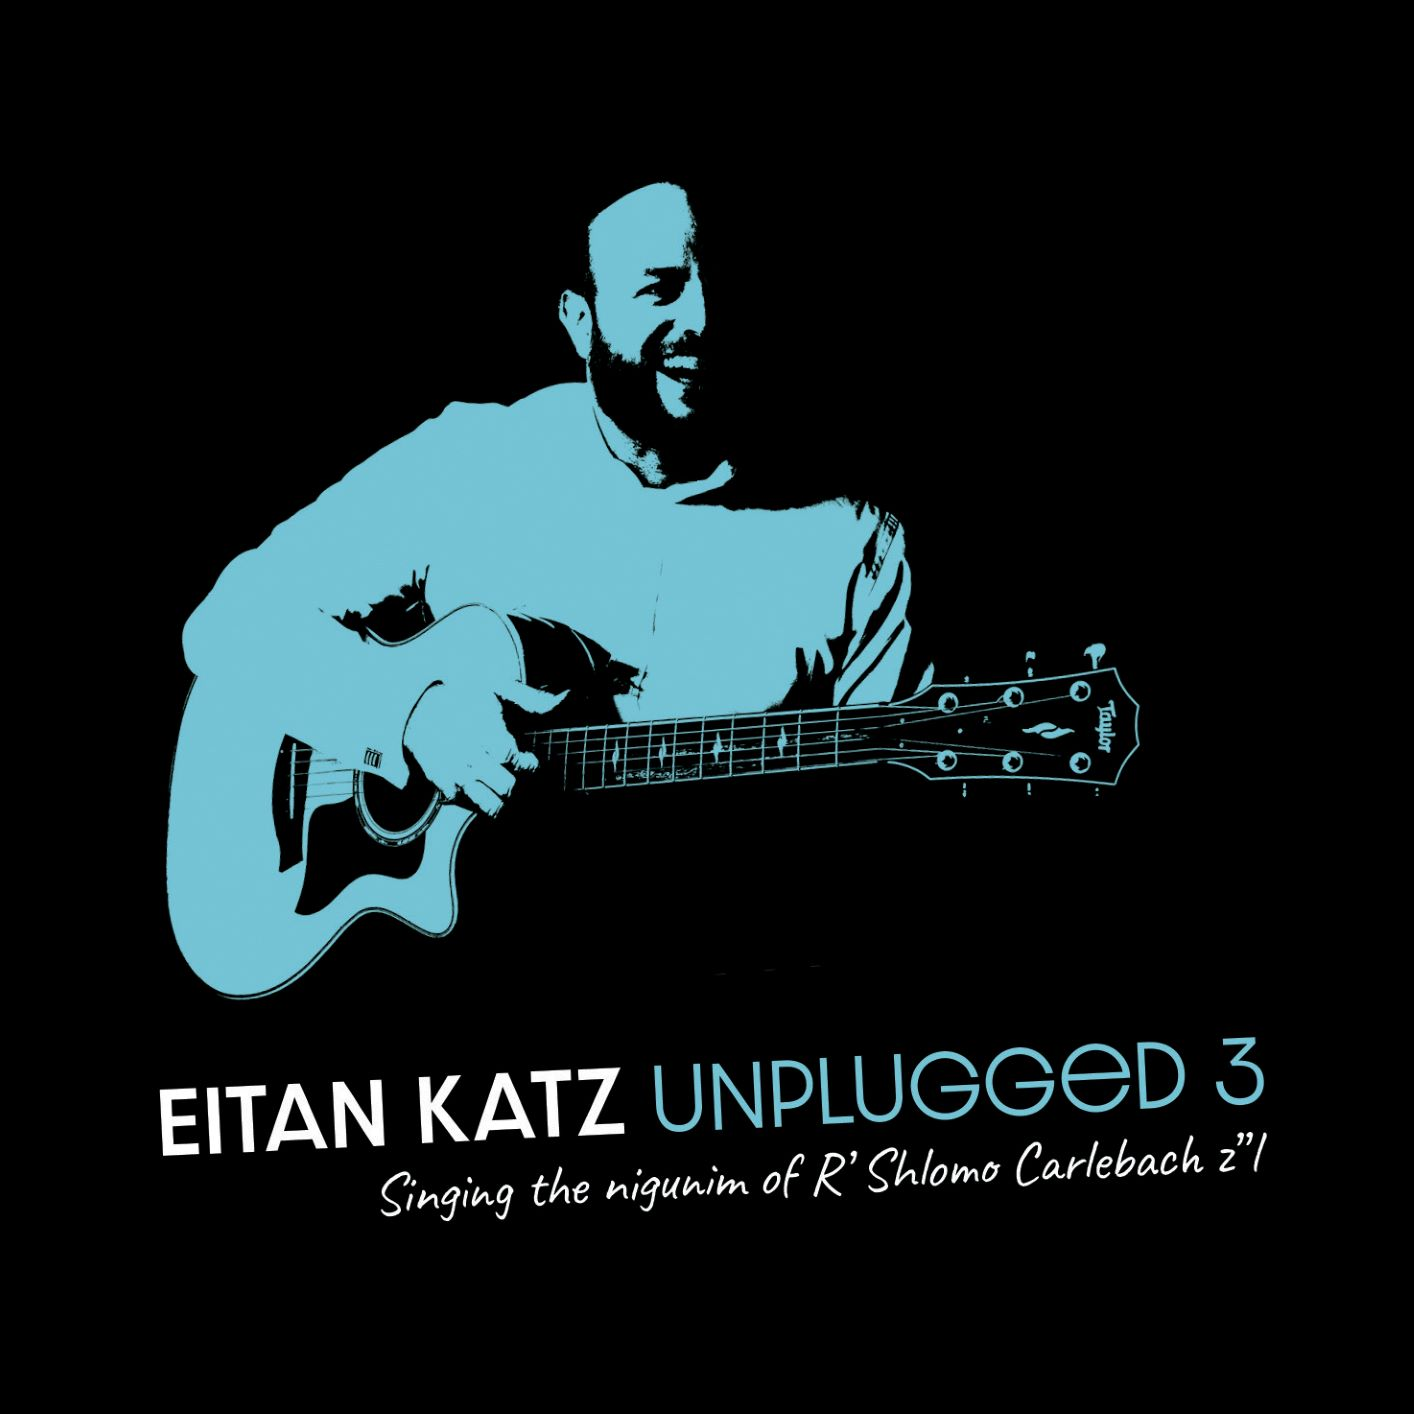 Eitan Katz - Unplugged 3